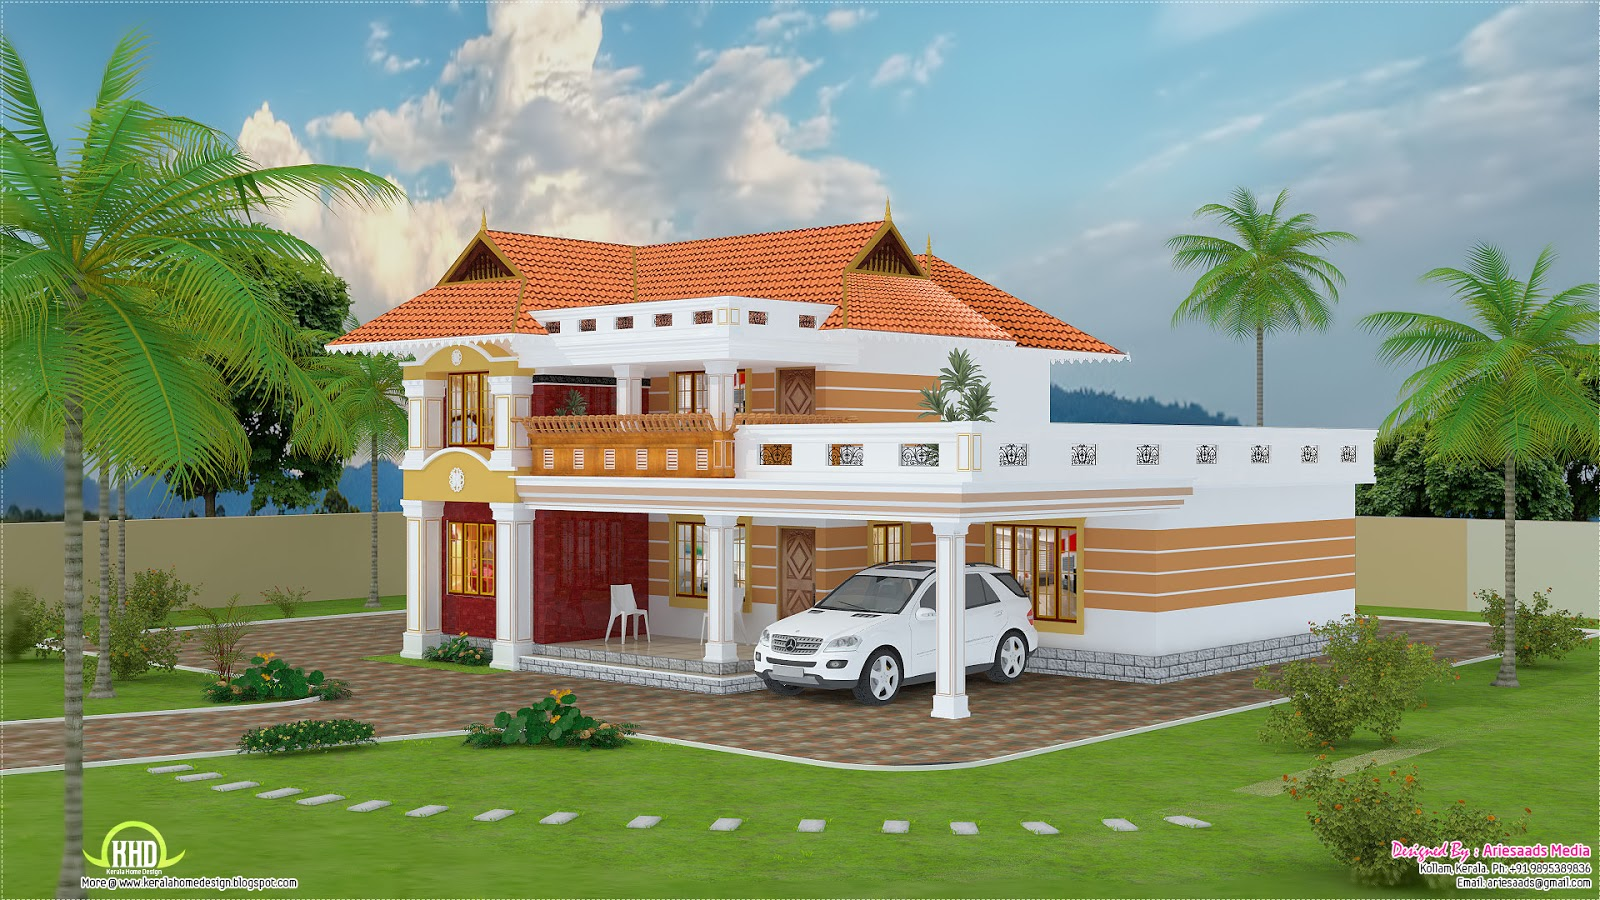 2700 beautiful villa design kerala home design and floor plans - Beatiful home pic ...